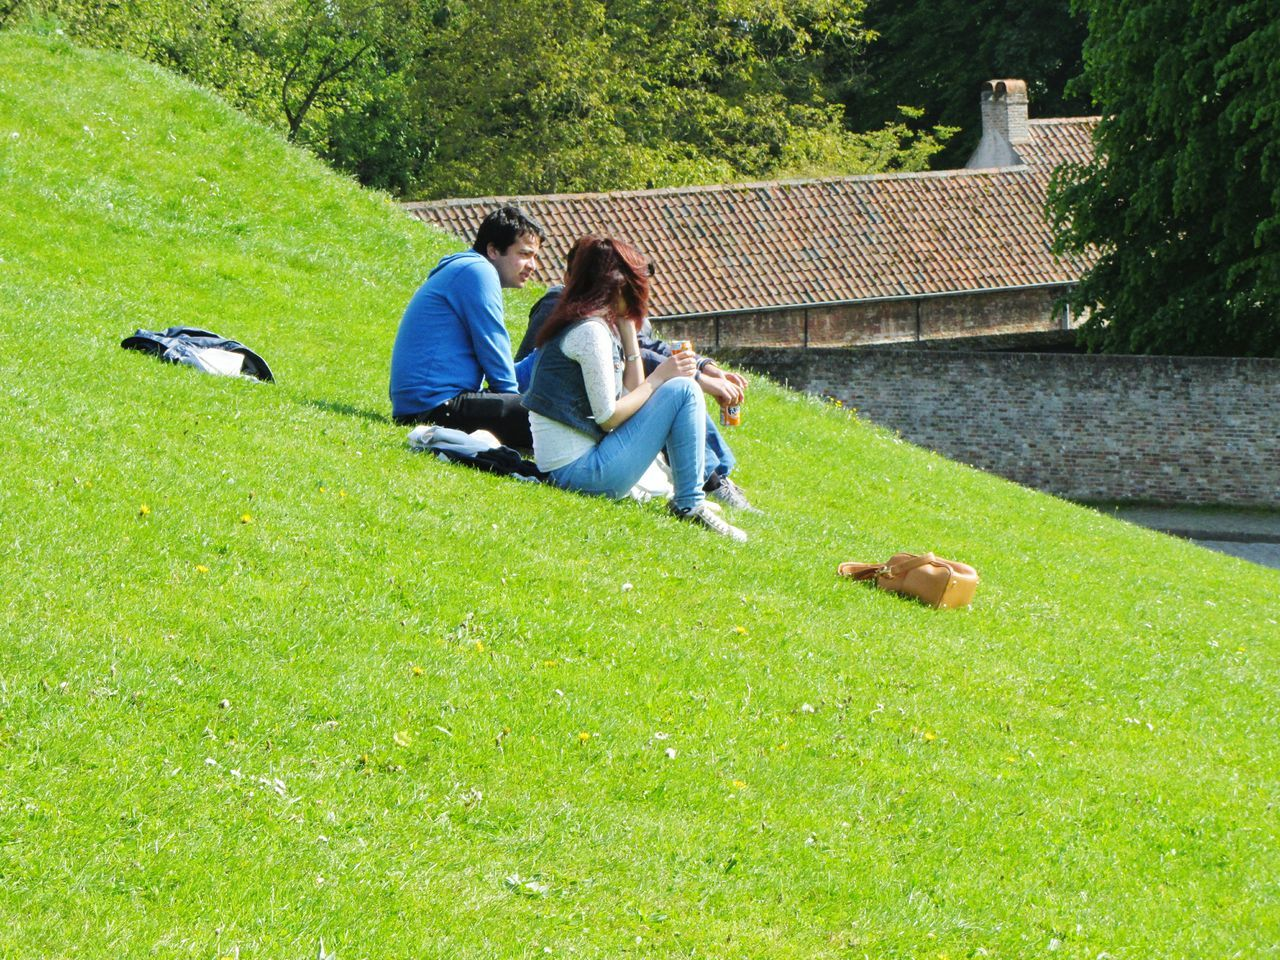 People Sitting Outside On A Grassy Slope Young People Together In The Sunshine Talking Green Grass Brick Wall Roof Bags Trees Daisies Flowers Chimney